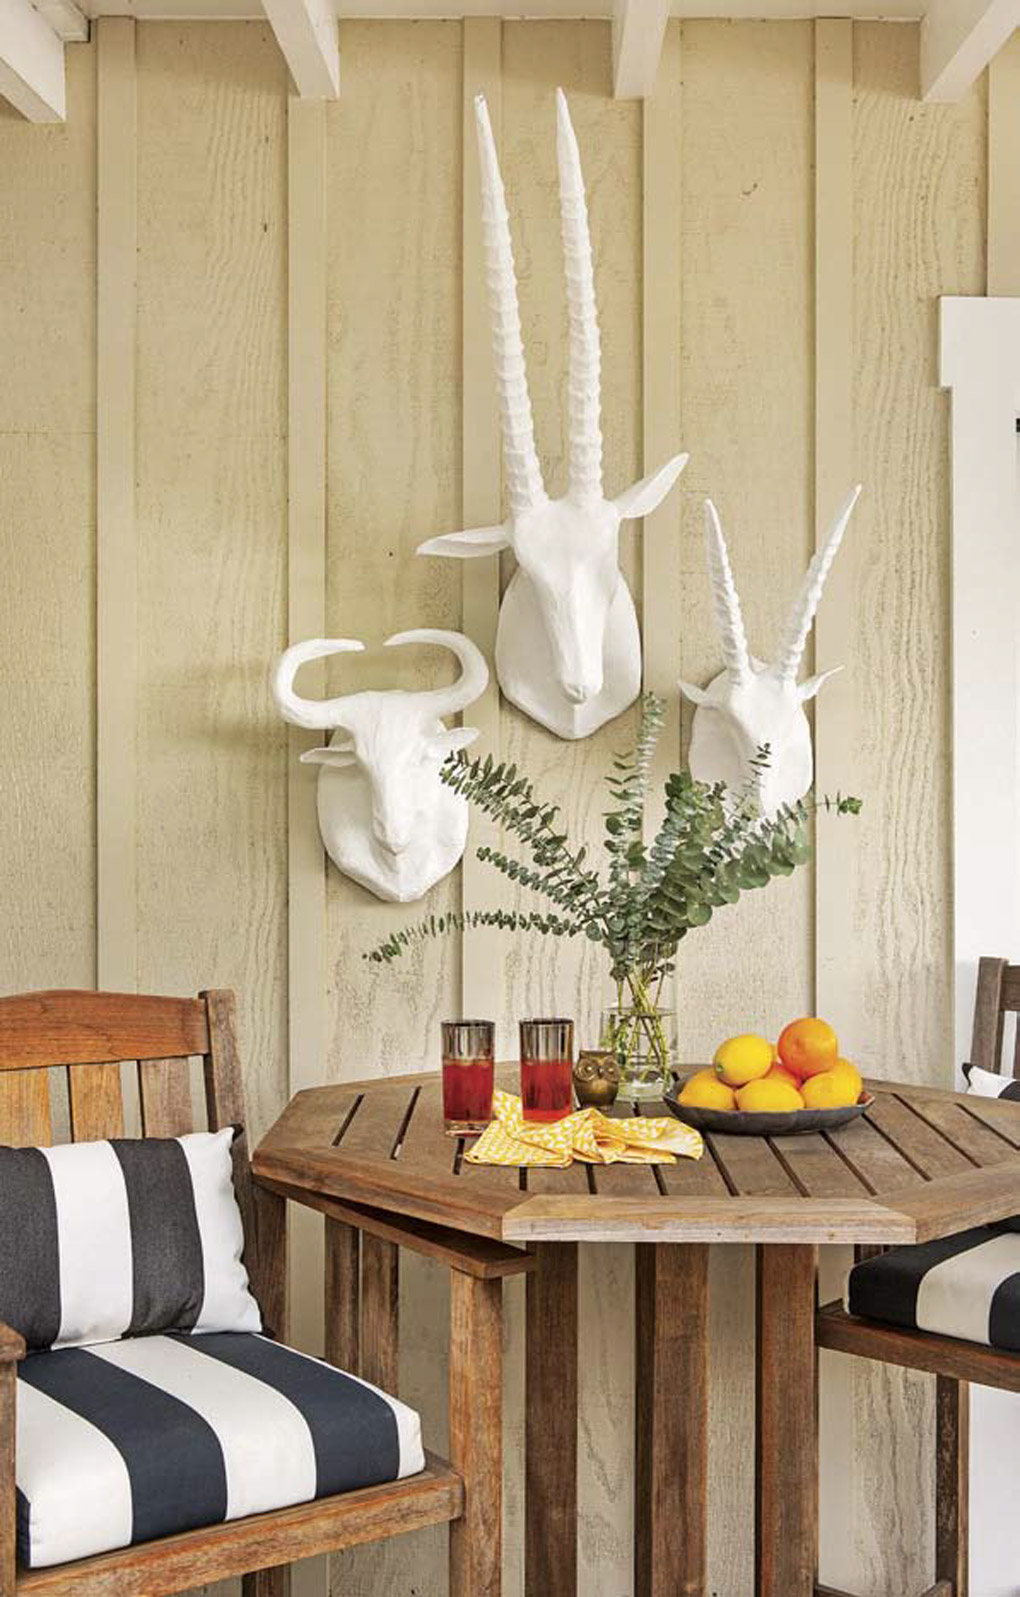 Outdoor teak bistro set with black and white striped cushions and set with a snack prepared in the table with white faux animal wall mounts on the wall.